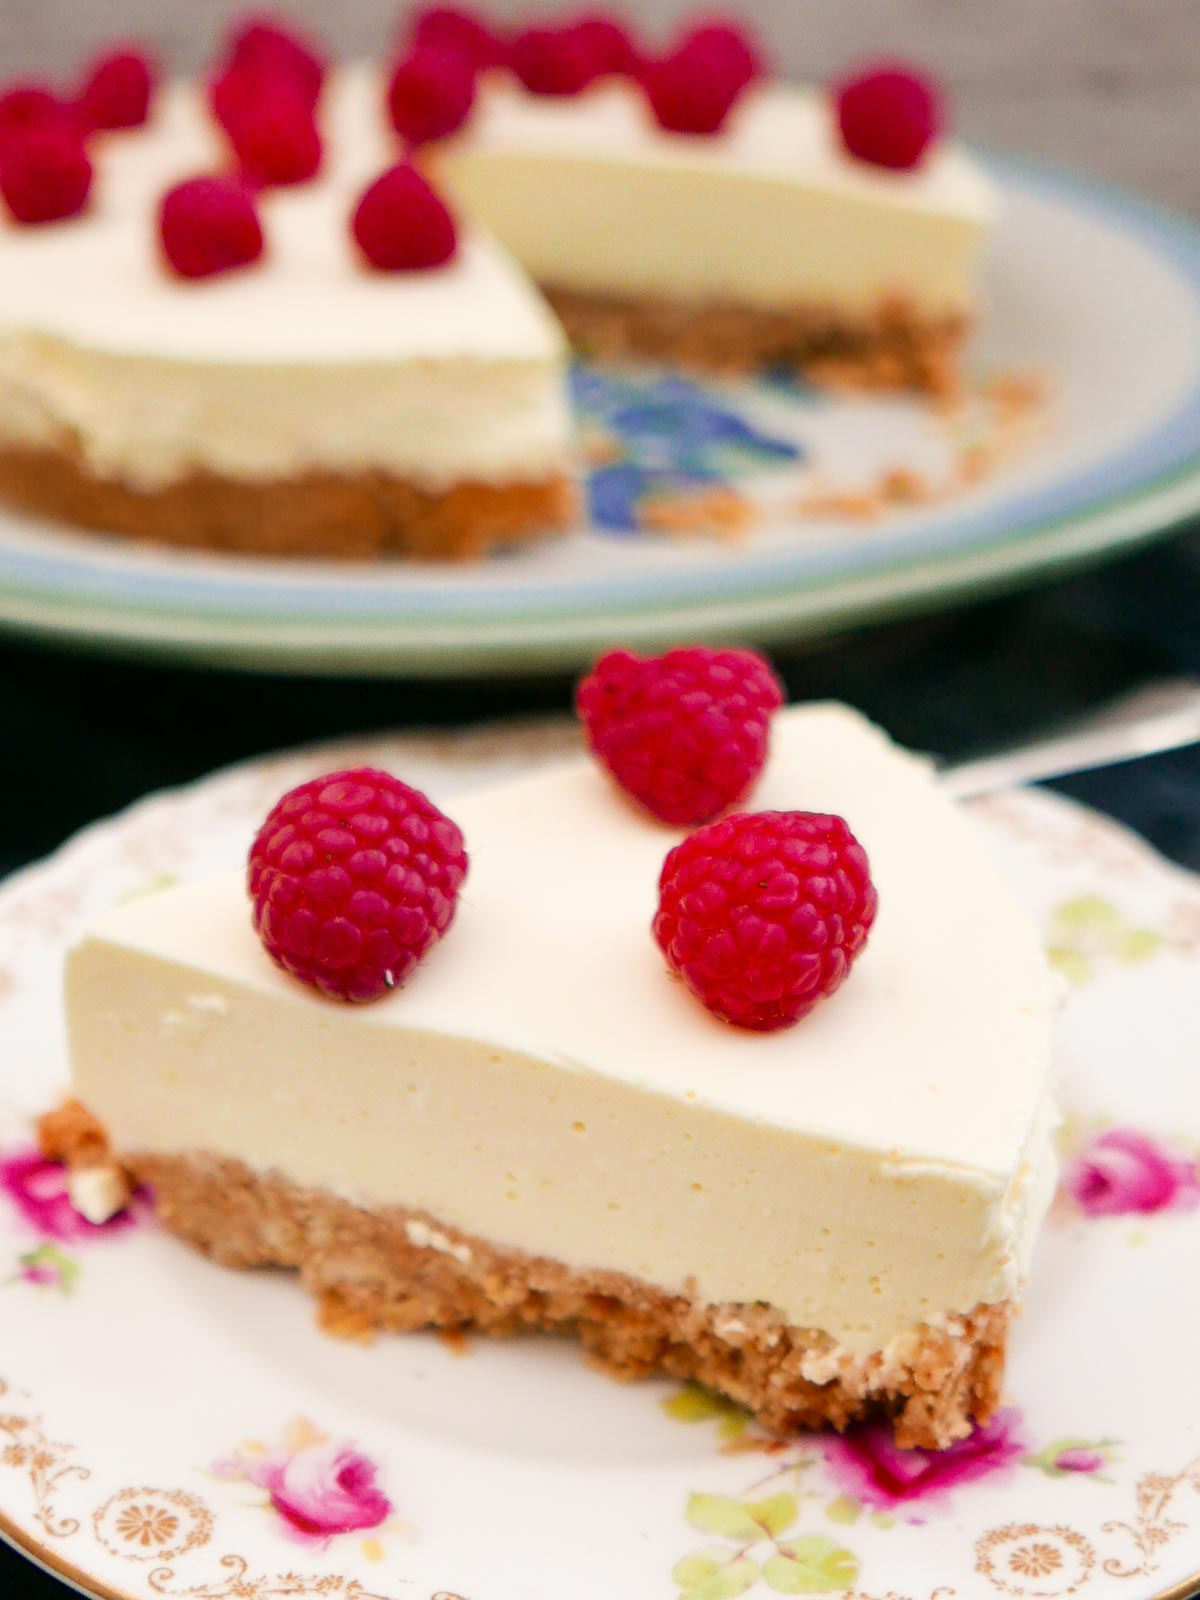 Slice of Easy Lemon Cheesecake with the rest of the cheesecake in the background.